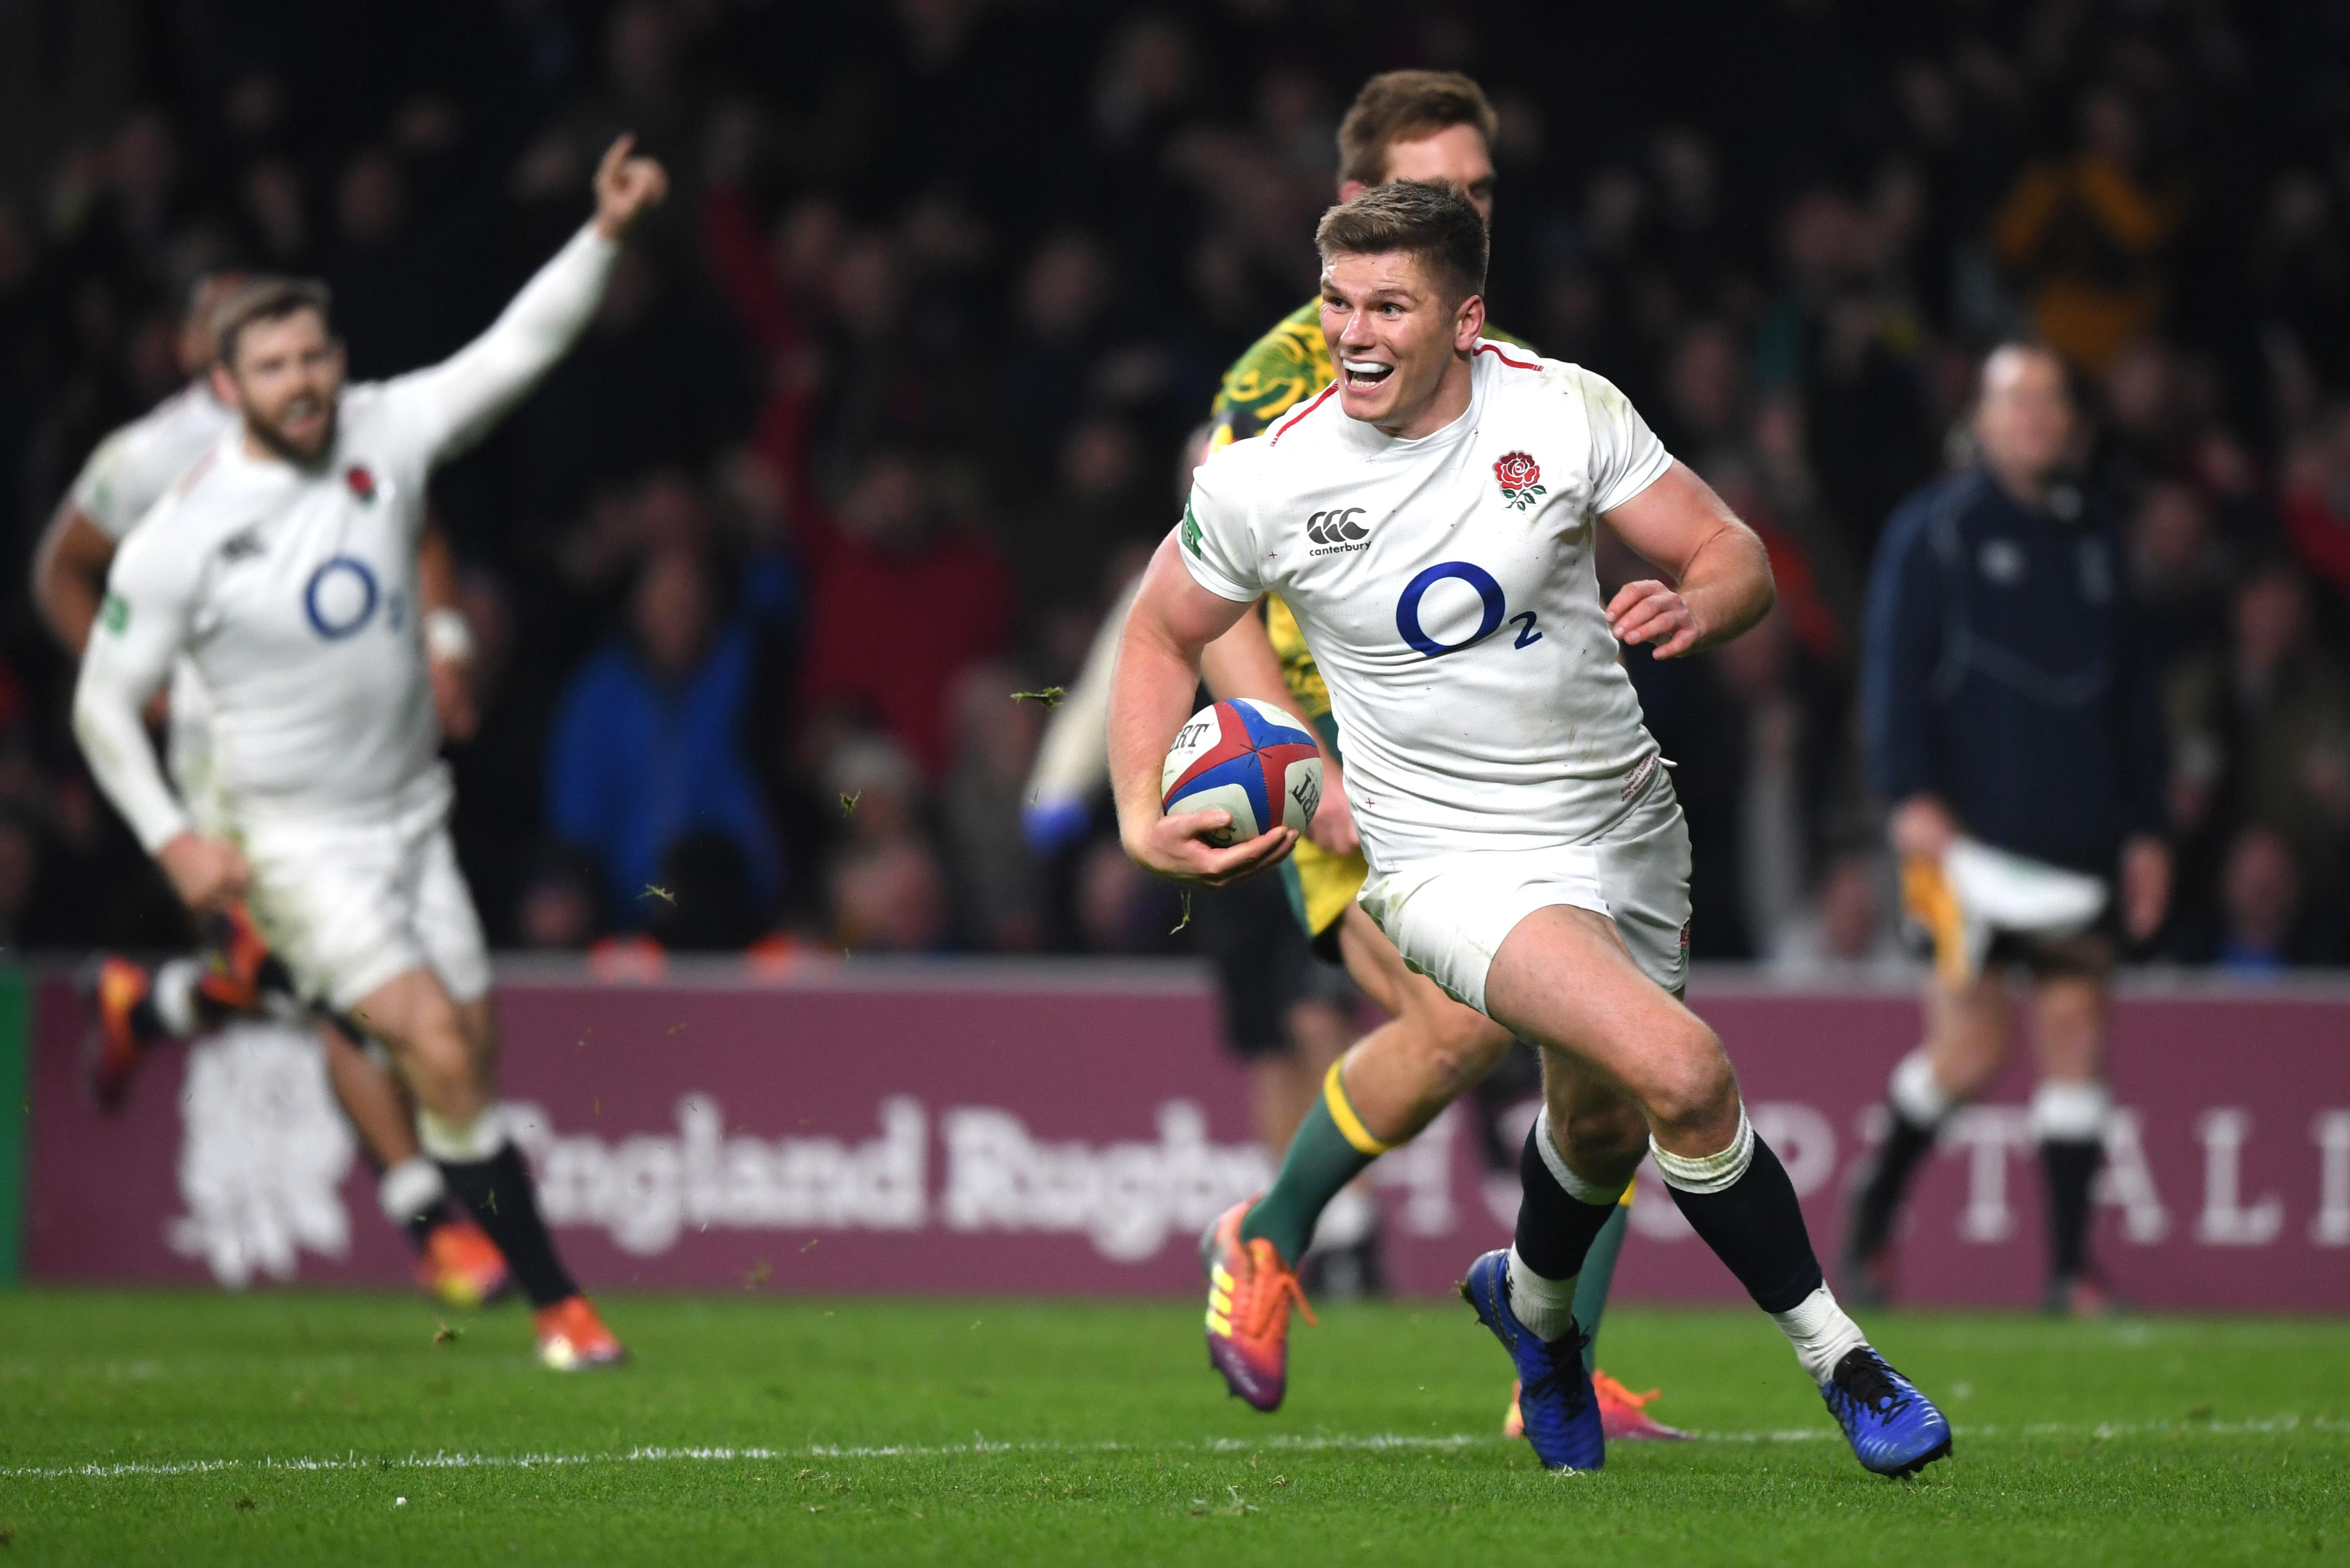 Farrell scored a superb try in the second half after a sweet offload from George Ford